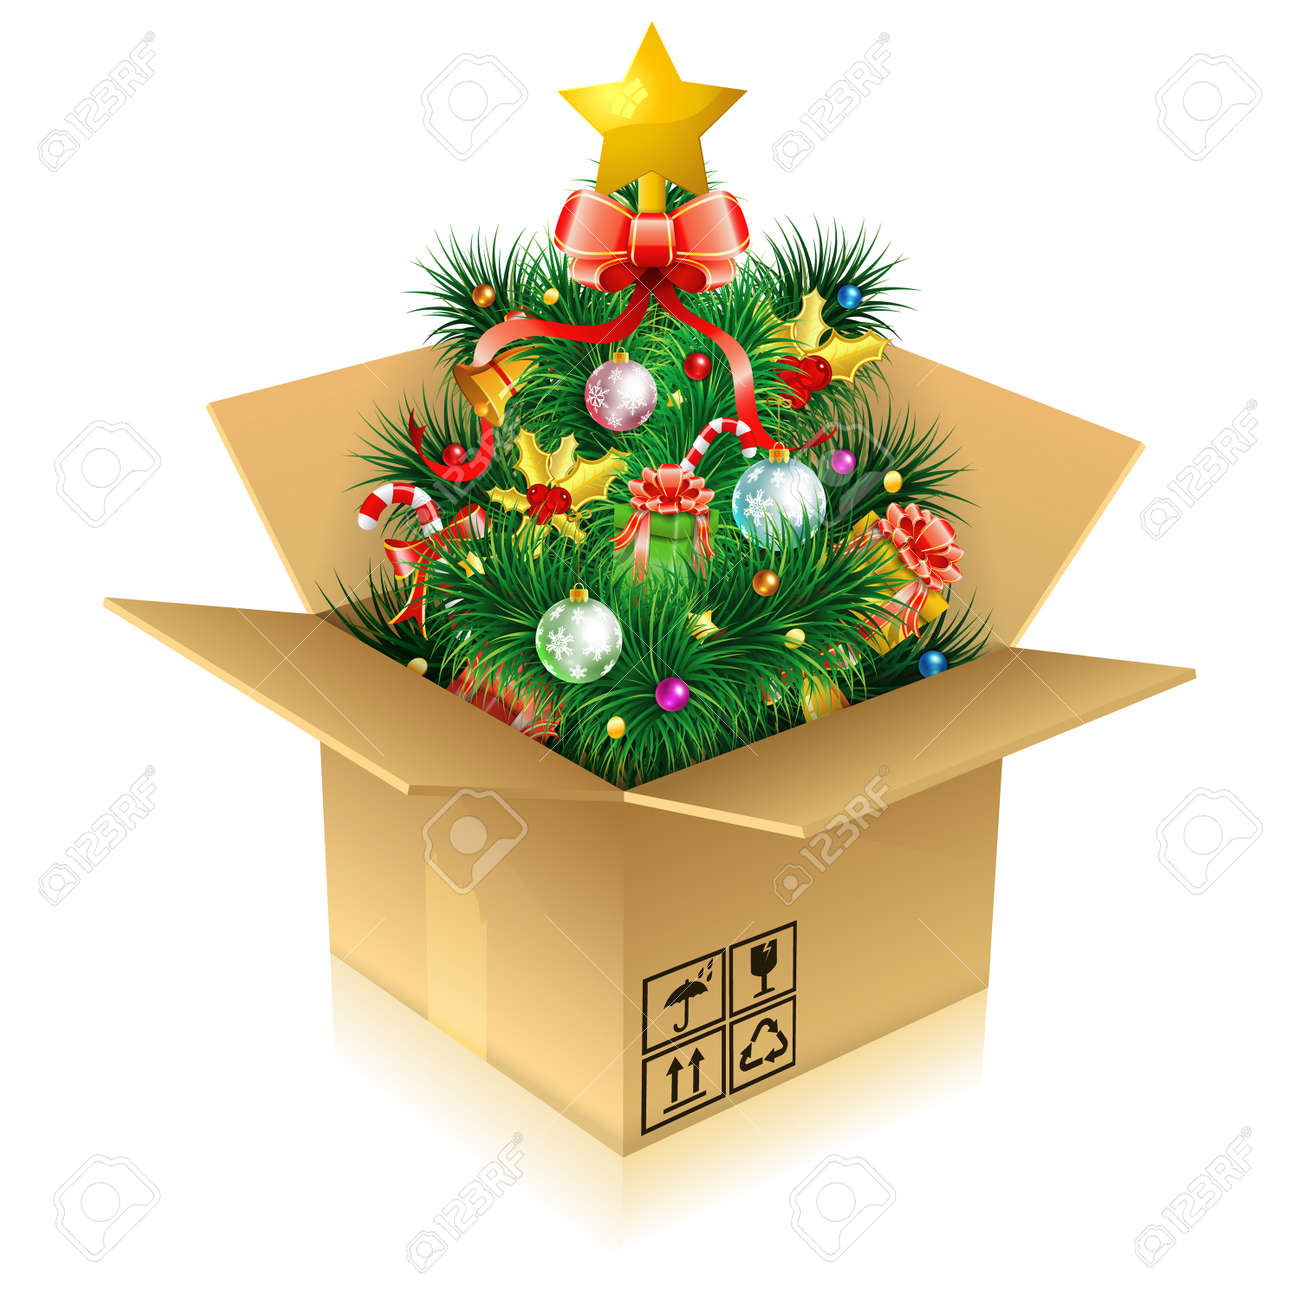 christmas tree with candy fir branches mistletoe gift in cardboard box icon - Christmas Tree Boxes